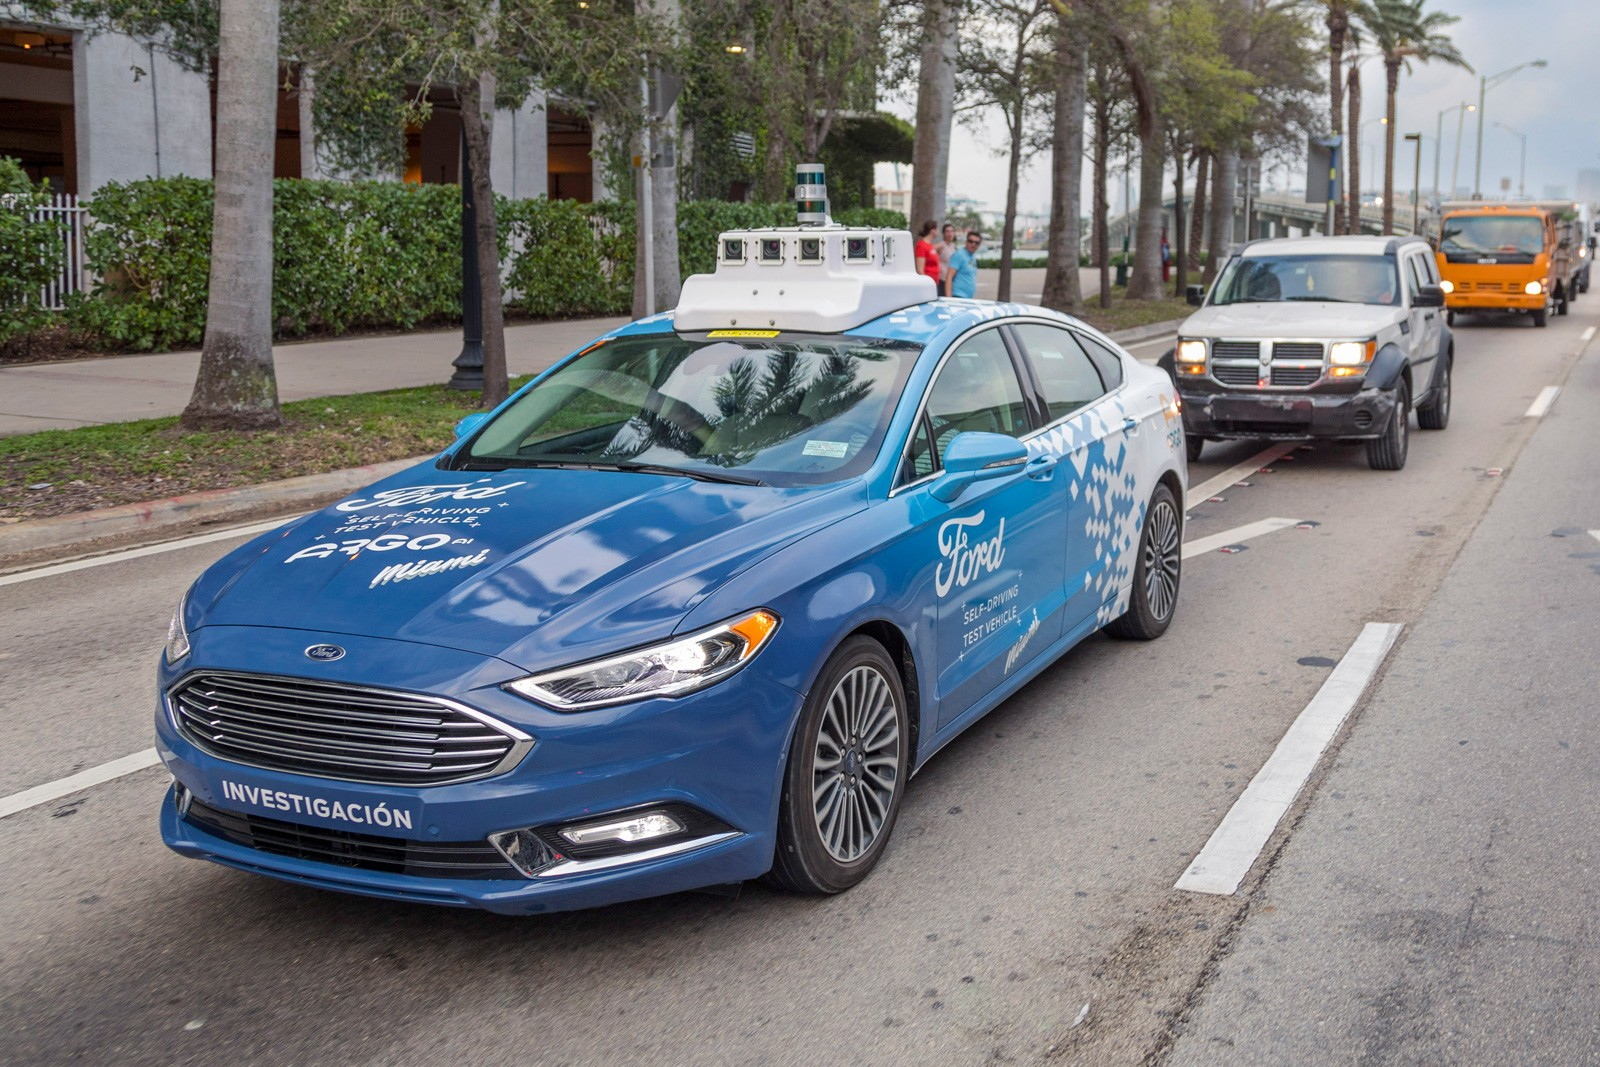 ford 39 s self driving car network will launch 39 at scale 39 in 2021. Black Bedroom Furniture Sets. Home Design Ideas